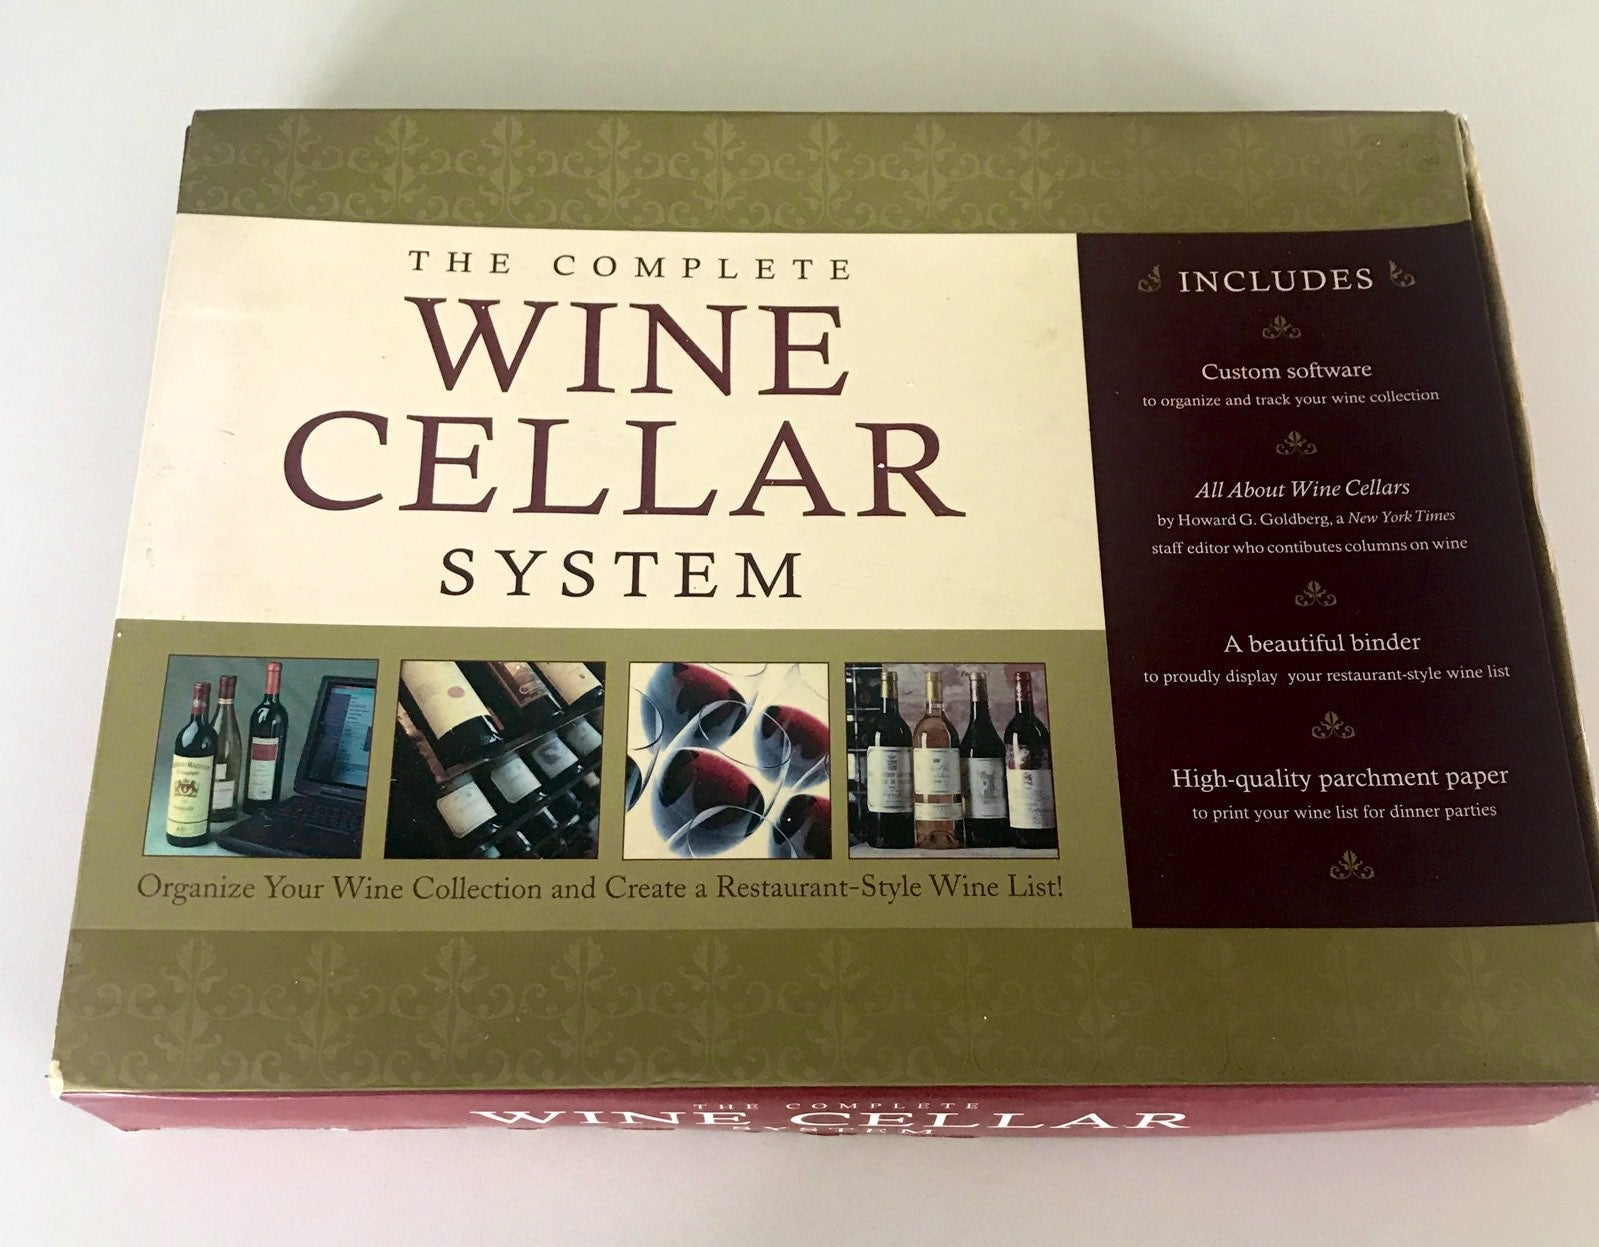 The Complete Wine Cellar System